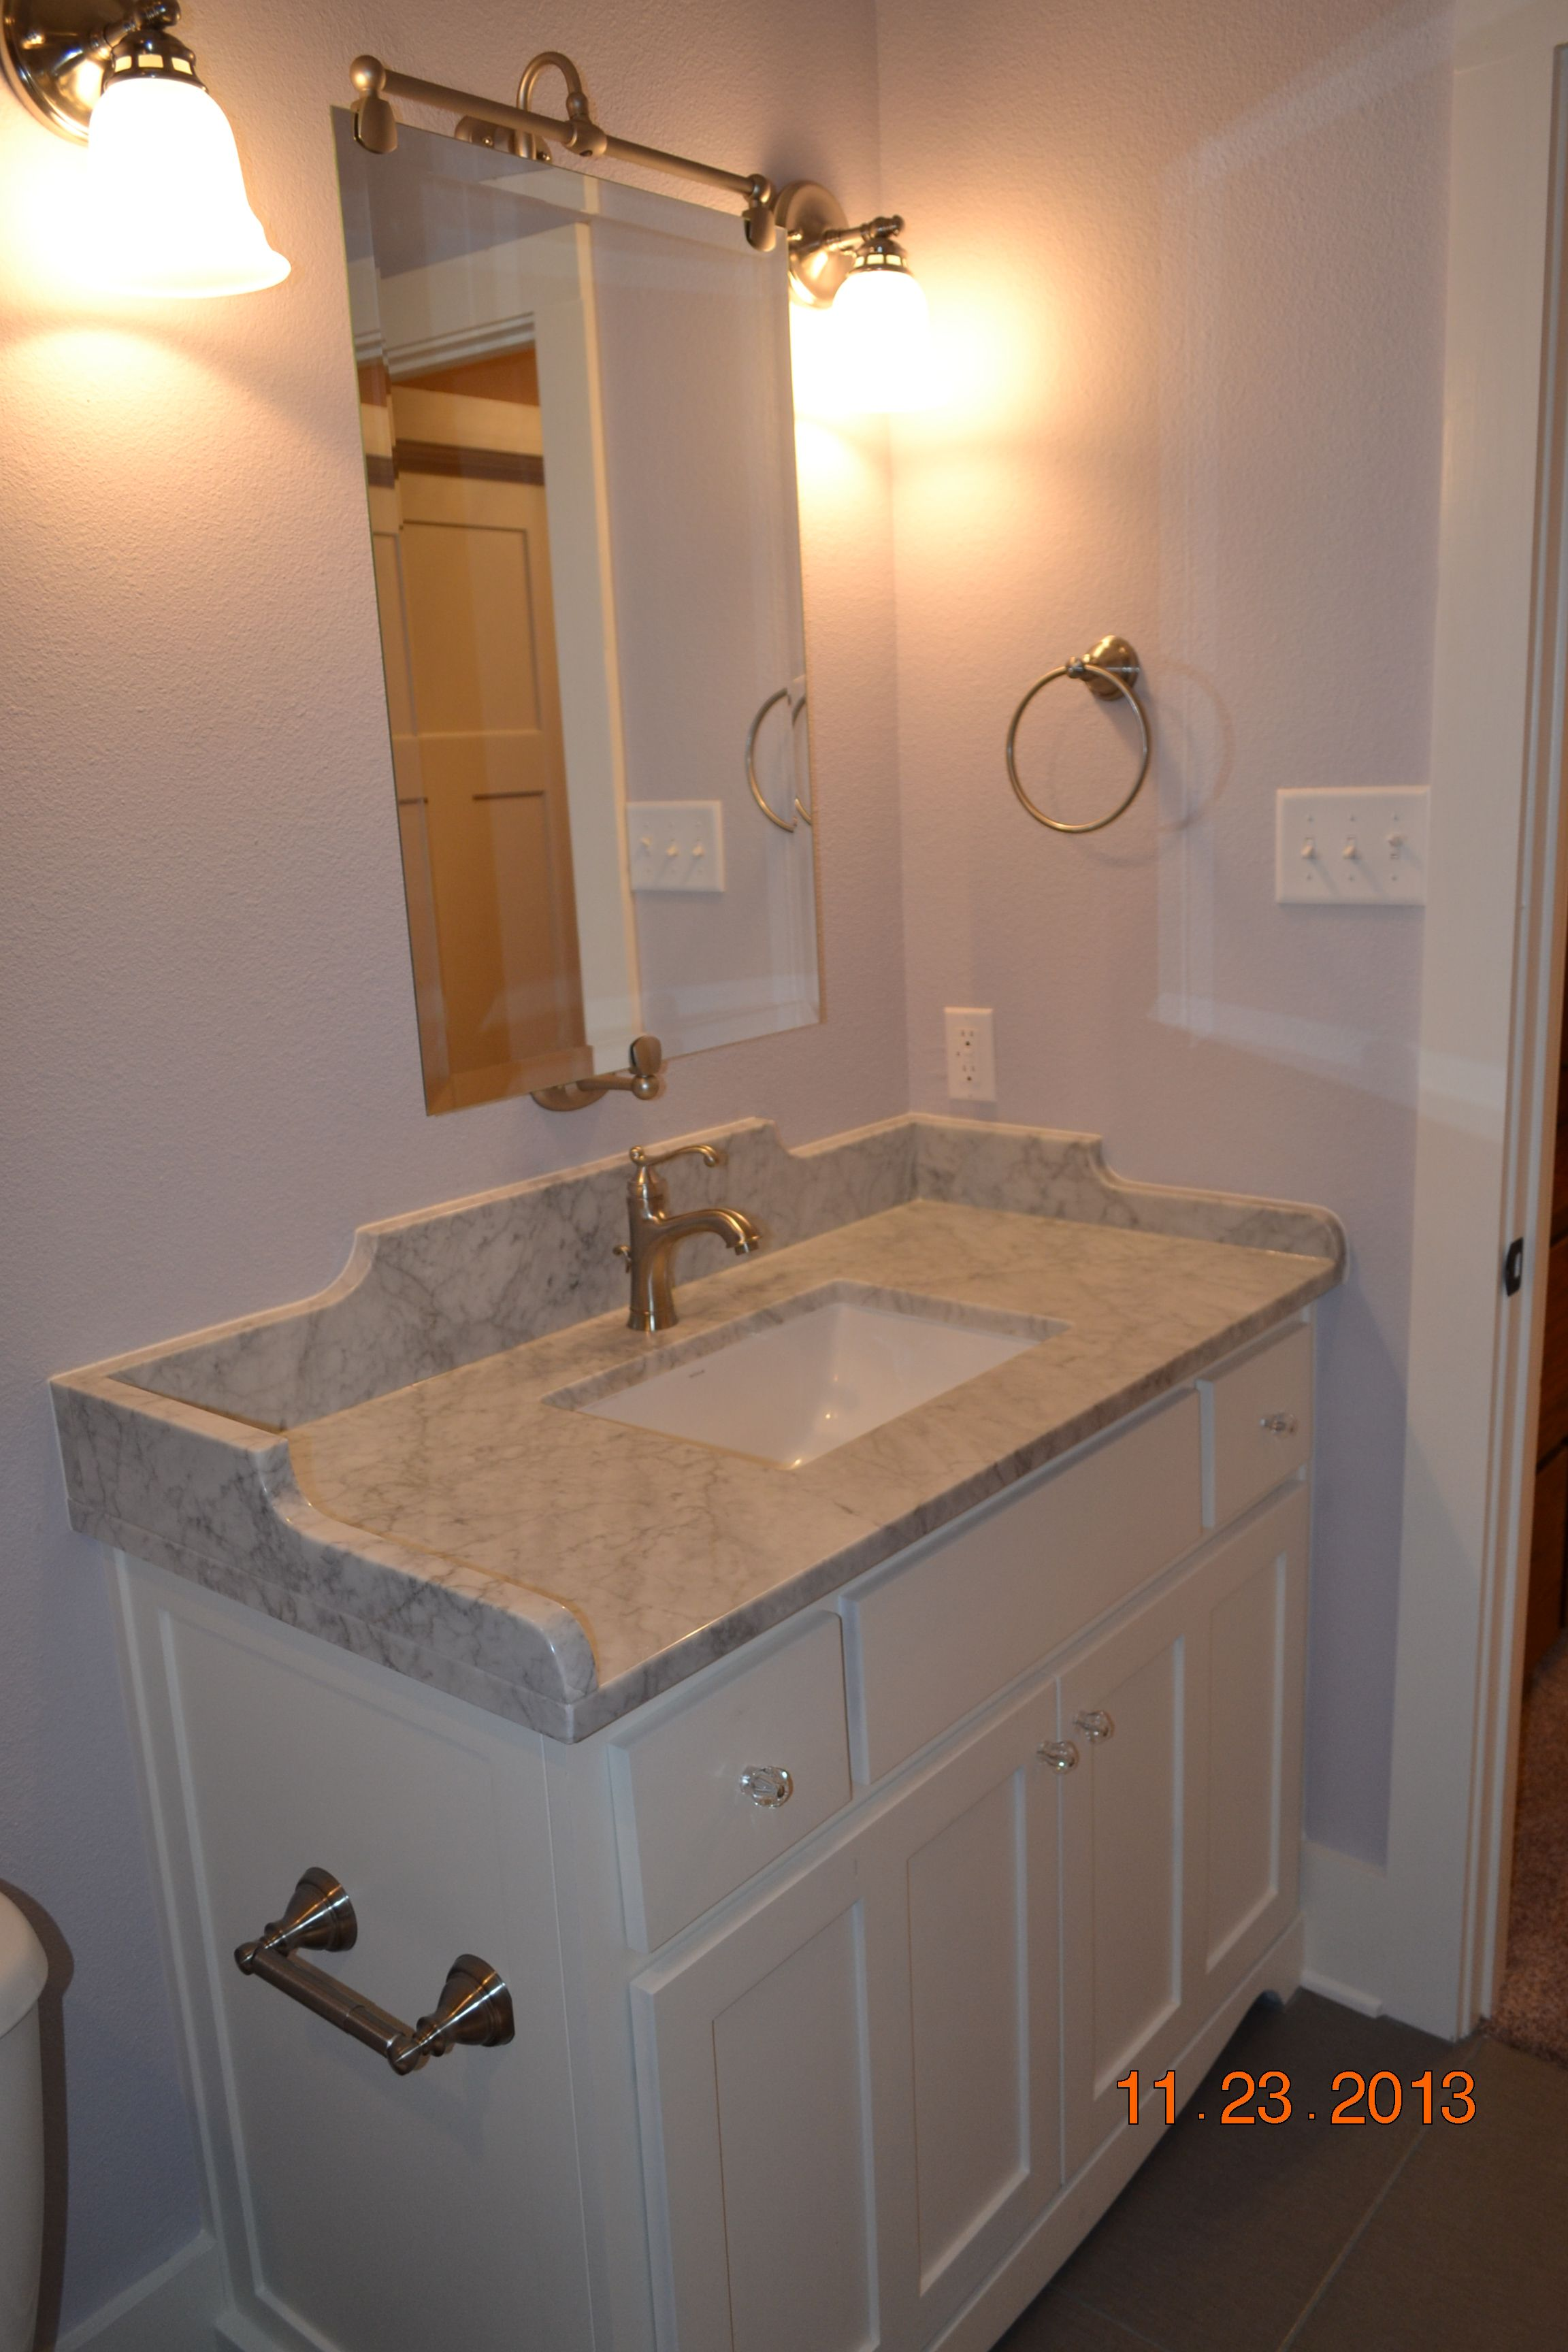 My Inspiration From Pottery Barn Lucca Vanity Undermount Sink With Custom Designed Vanity Top In Honed Carra Purple Bathrooms Shaker Style Cabinets Style Tile